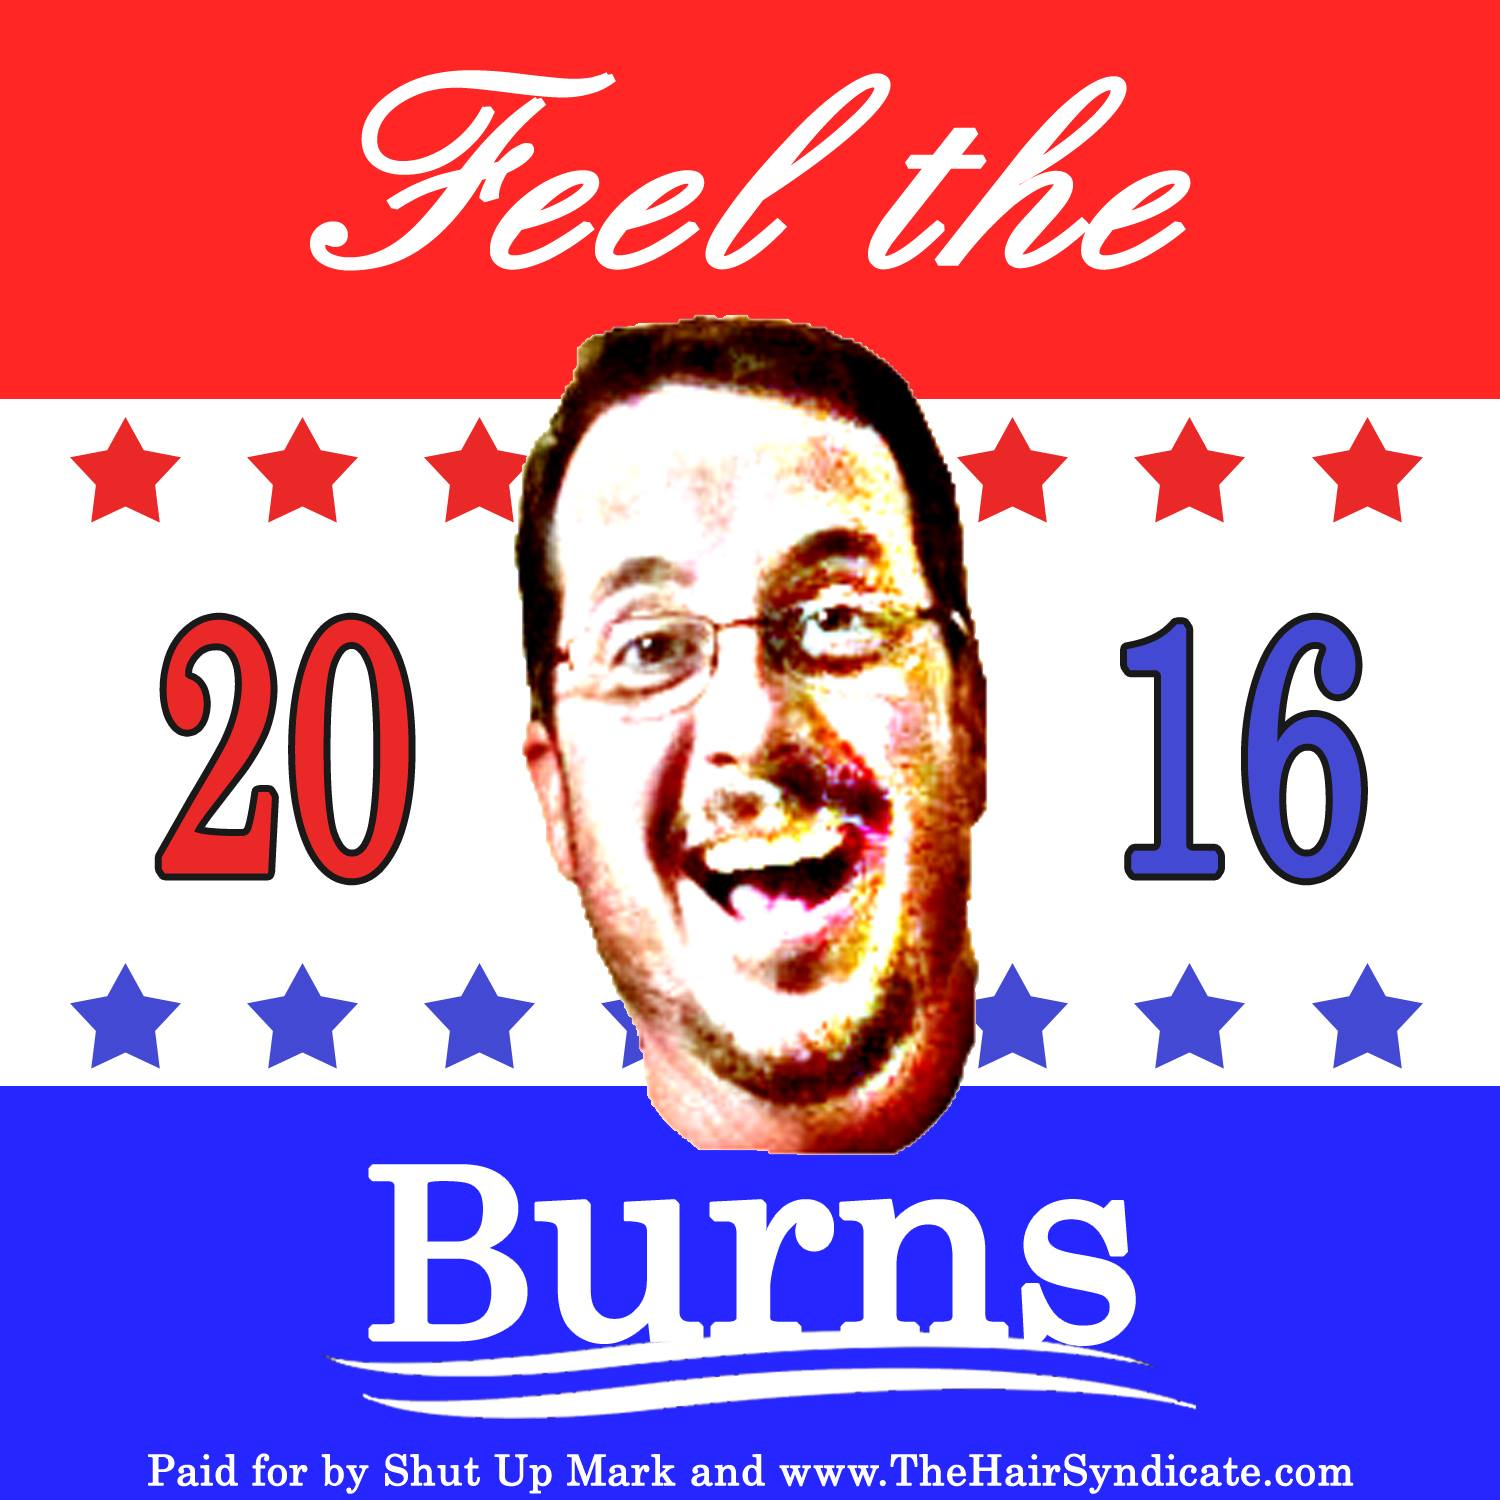 Vote for Burns!